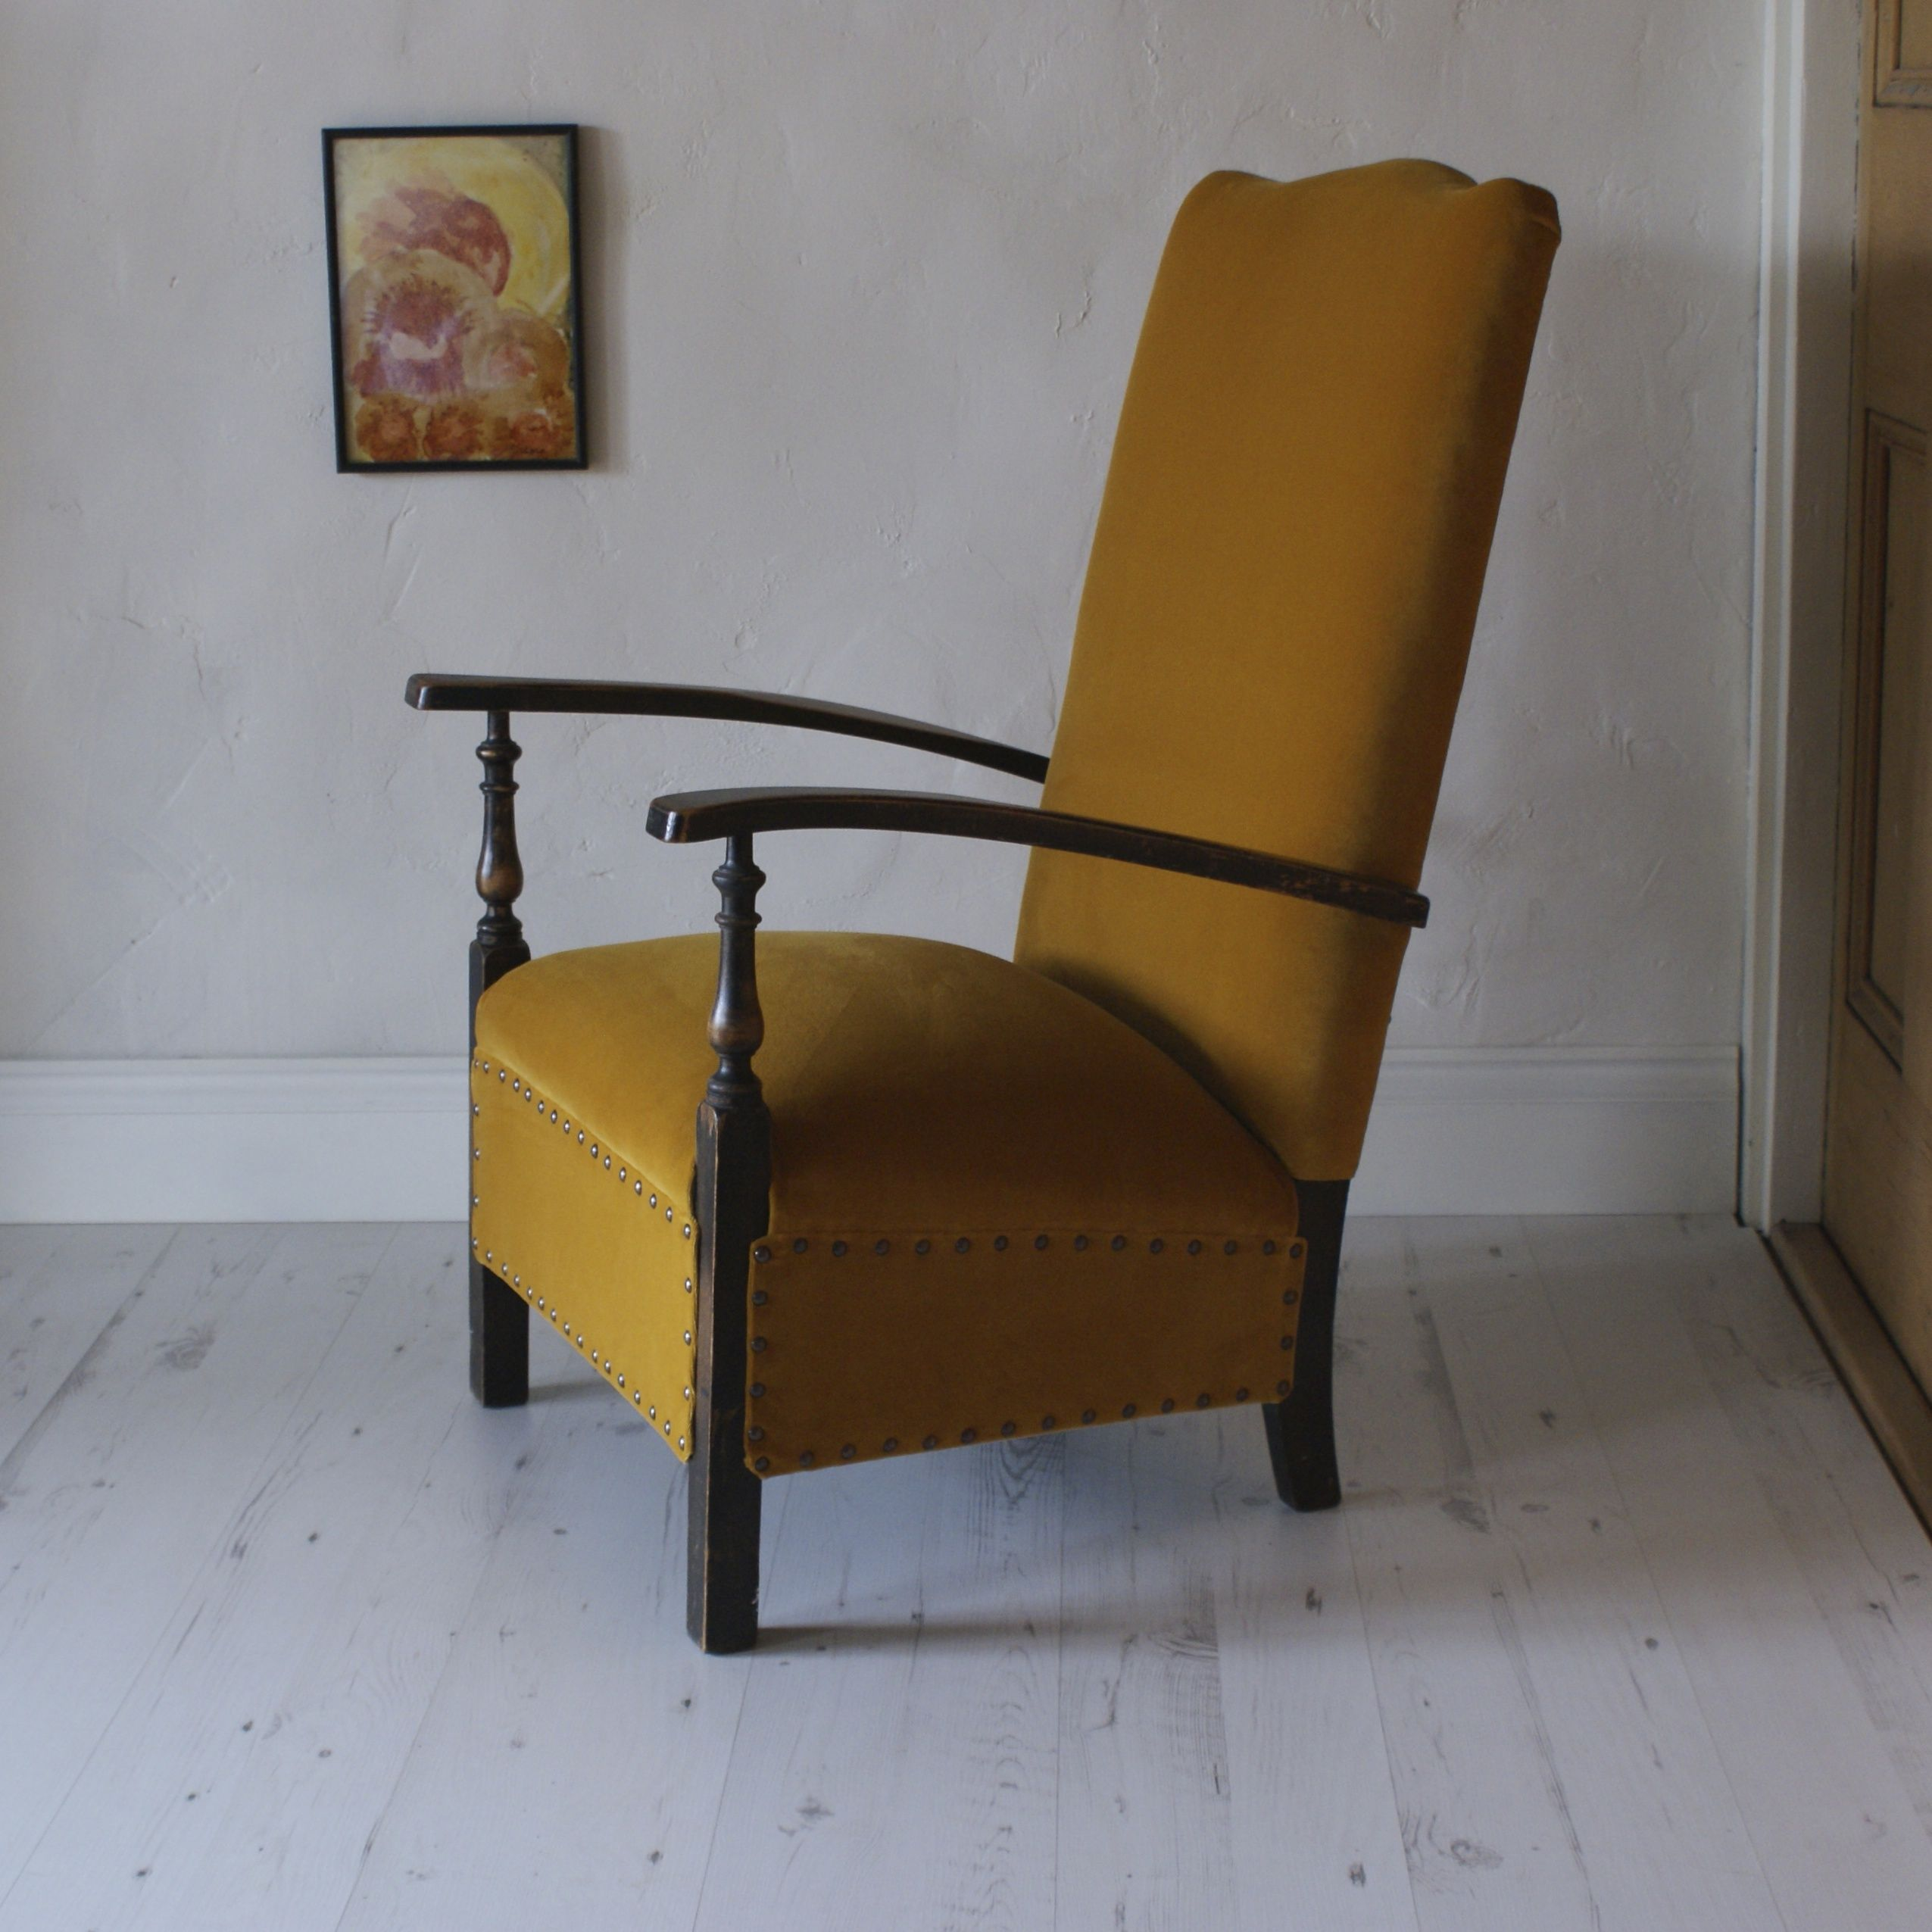 Velvet, Chairs, Yellow, Tire Chairs, Stool, Side Chairs, Chair, Wingback